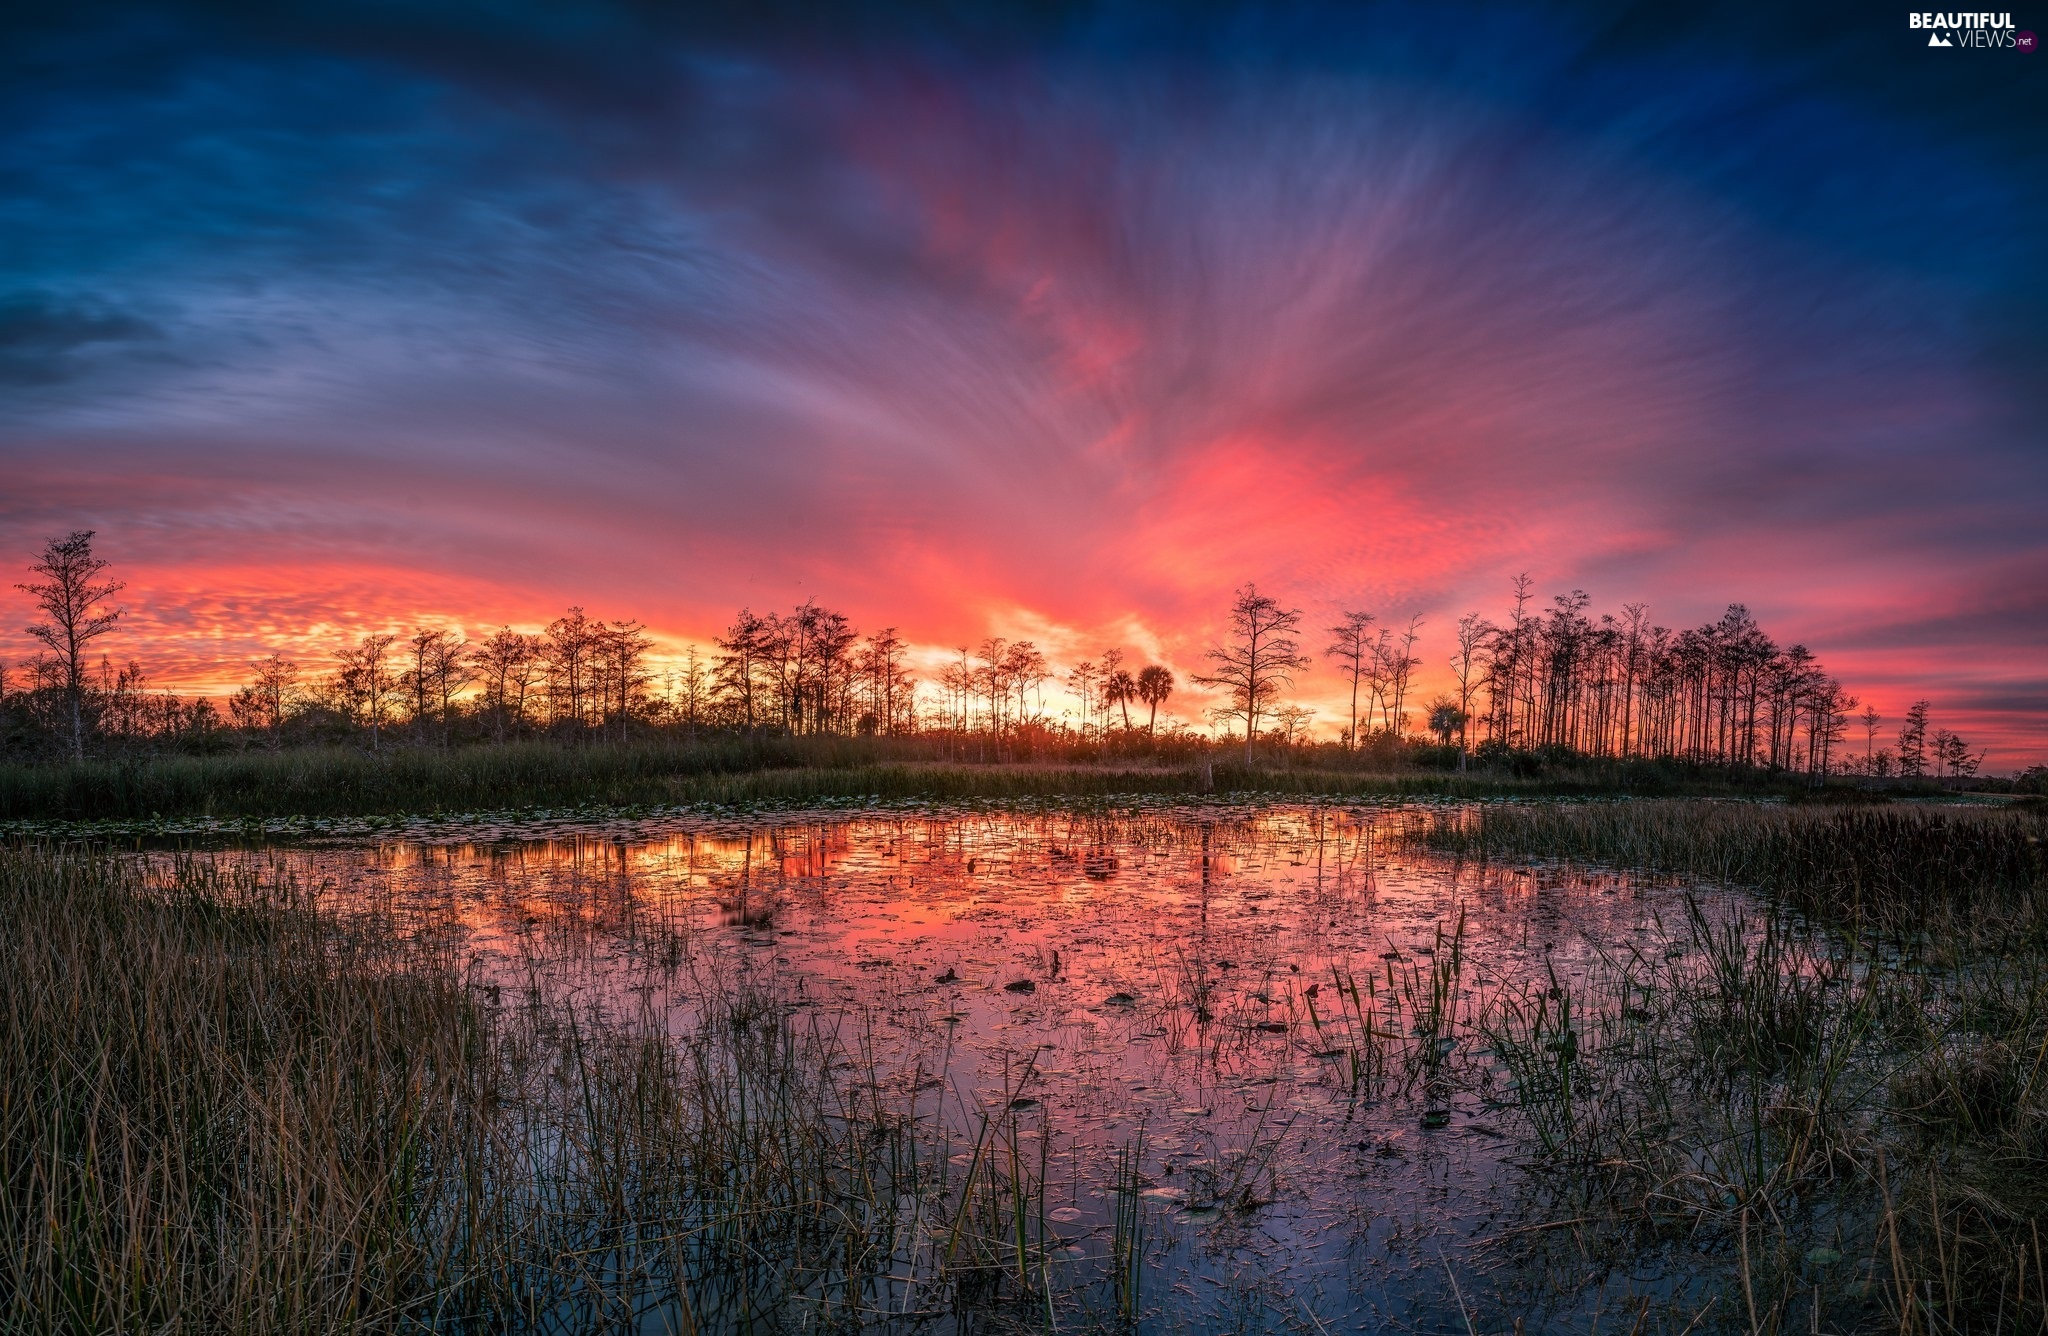 swamp, pool, grass, trees, reflection, Great Sunsets, Red, Sky, viewes